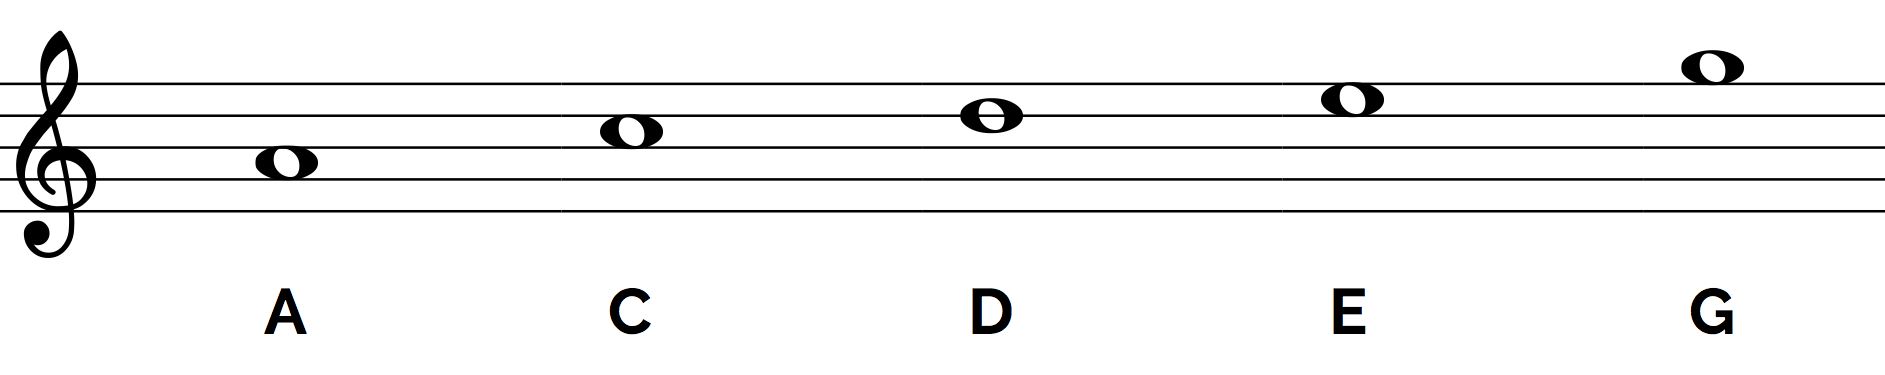 pentatonic-a-minor